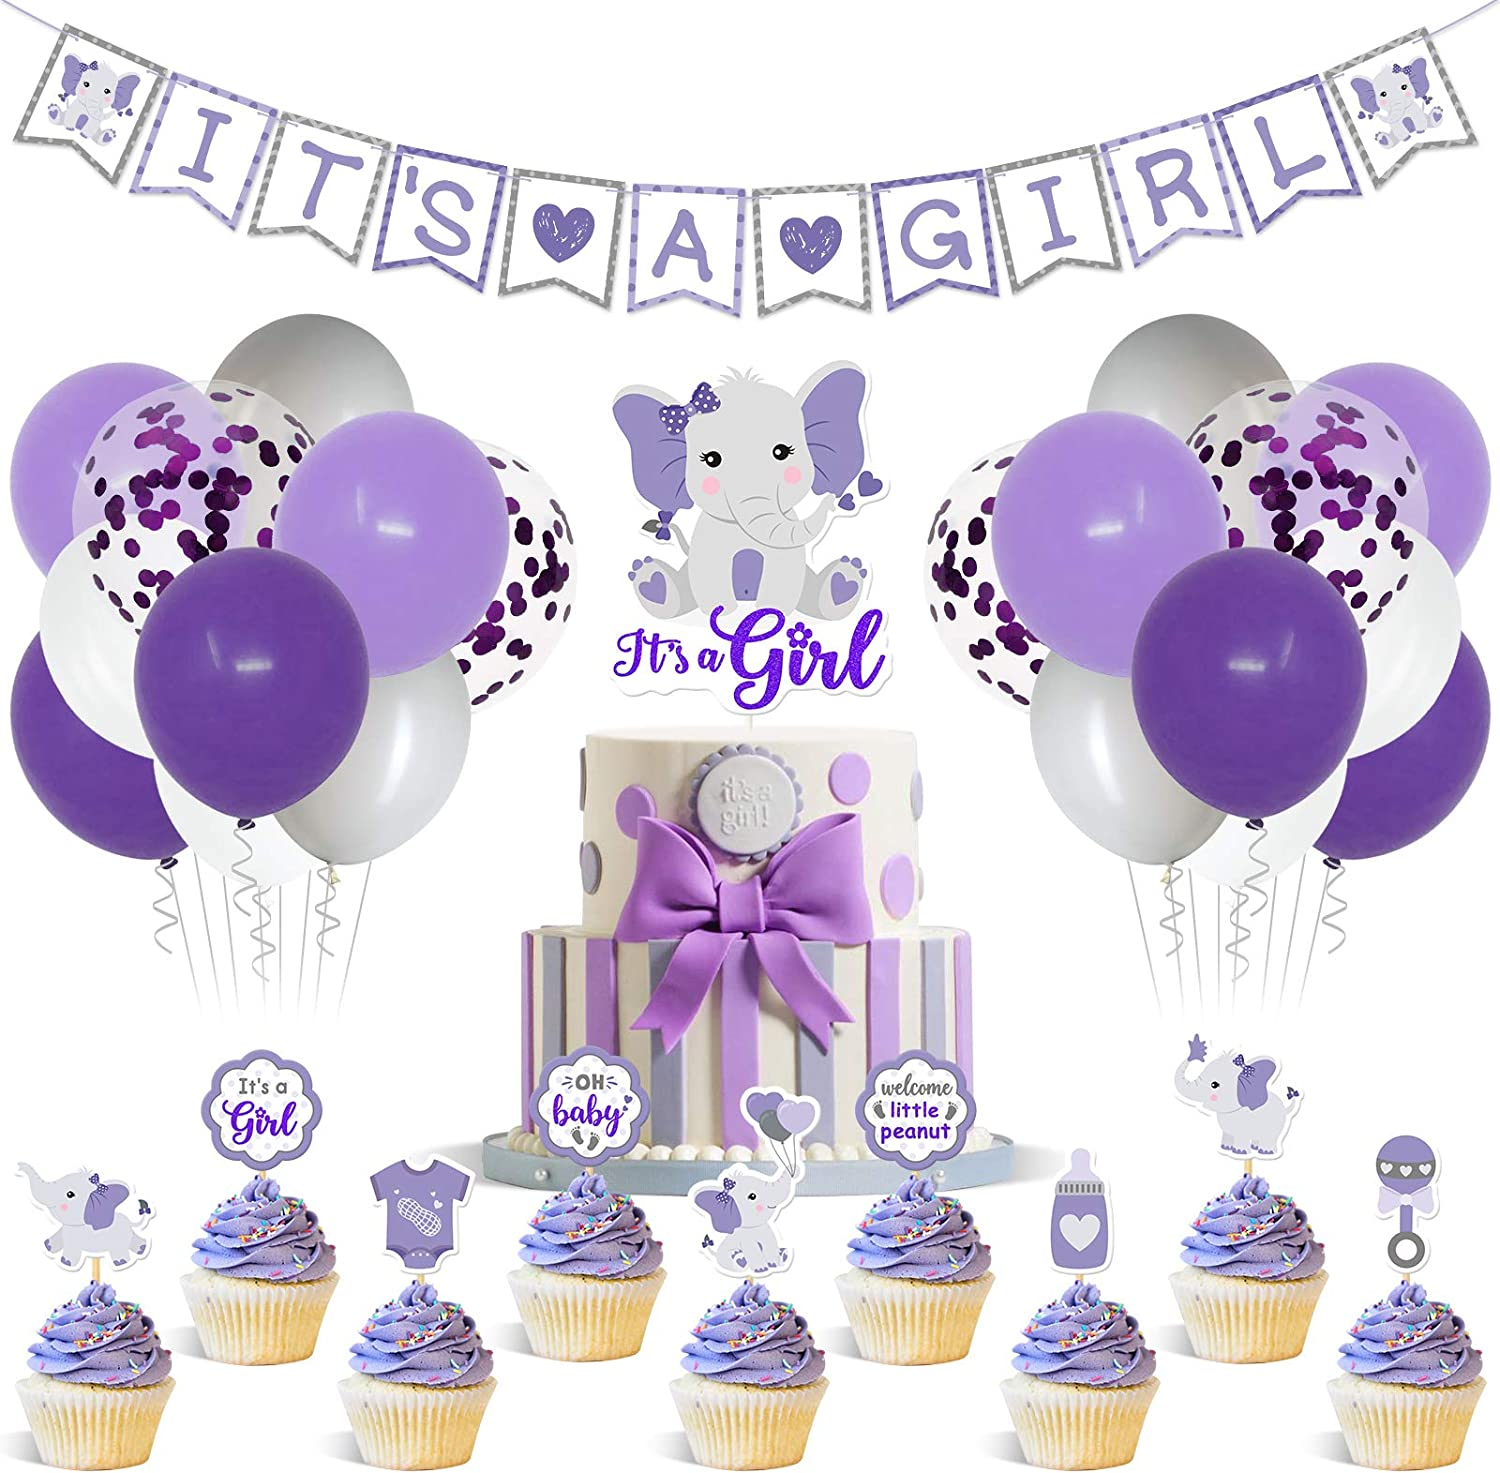 Purple Elephant Baby Shower Decor Purple and Gray It's a Girl Banner Cake Topper Cupcake Toppers Latex Balloons for Girl Baby Shower Purple Little peanut Welcome Baby Birthday Party Supplies